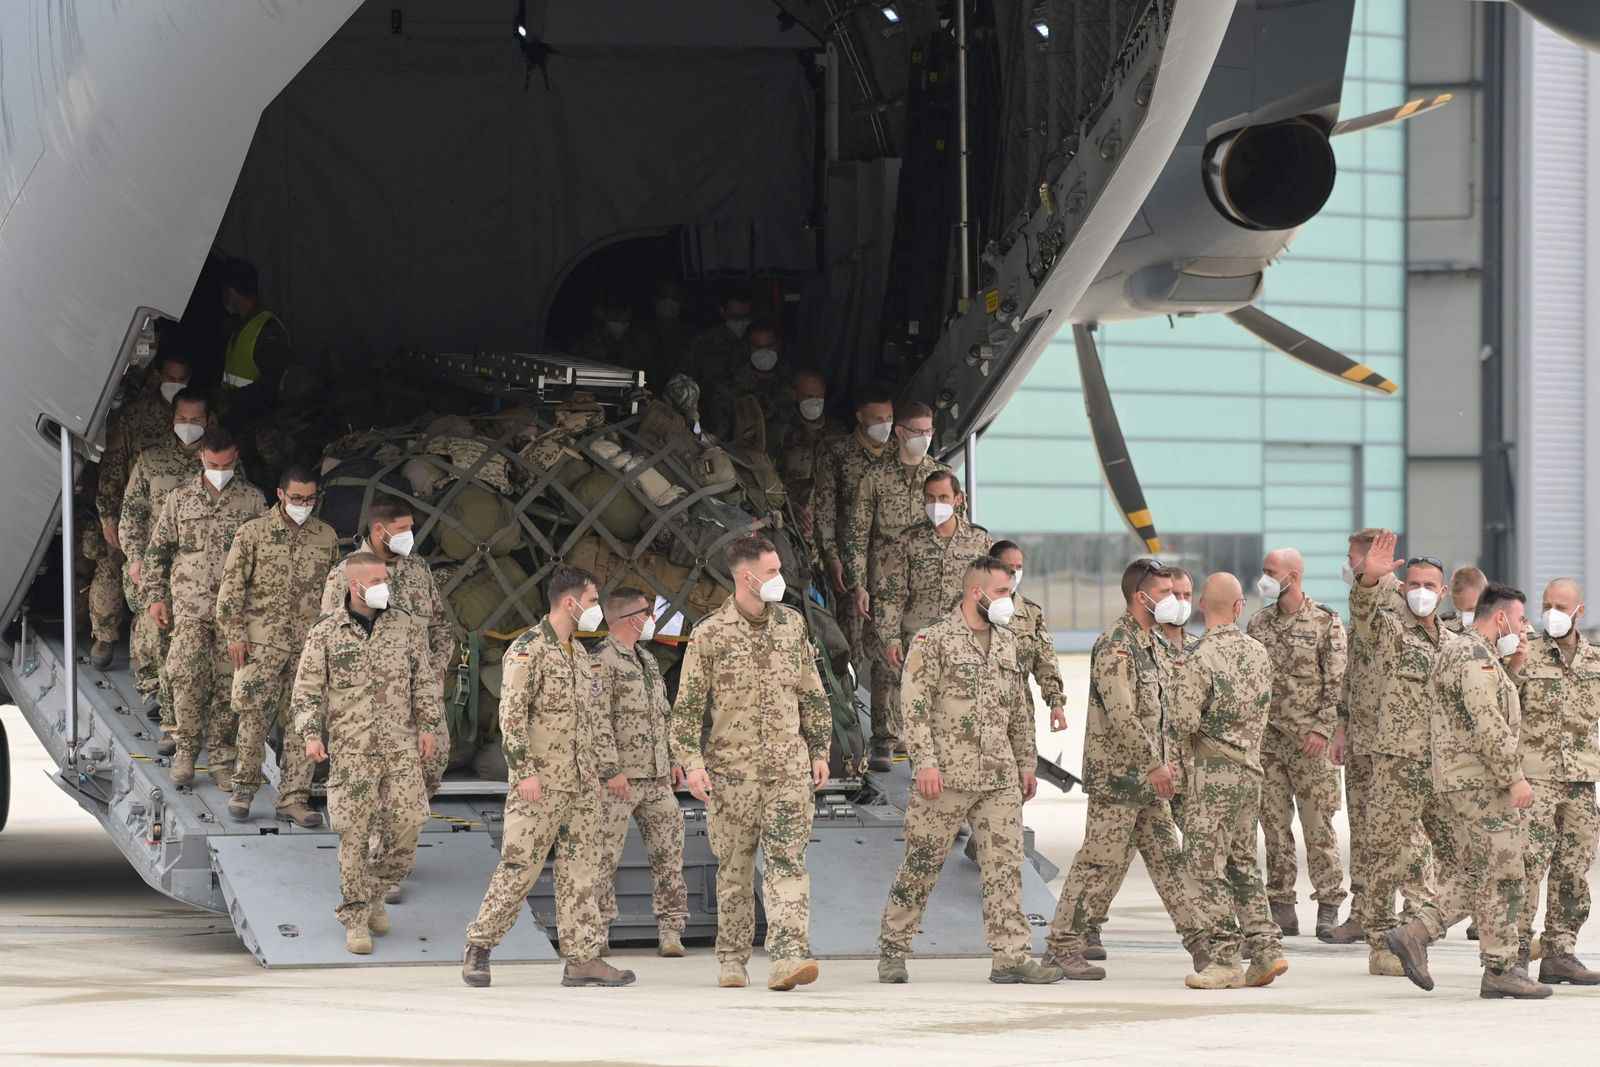 conflict-GERMANY-US-DIPLOMACY-NATO-DEFENCE-ARMY-AFGHANISTAN-CONF